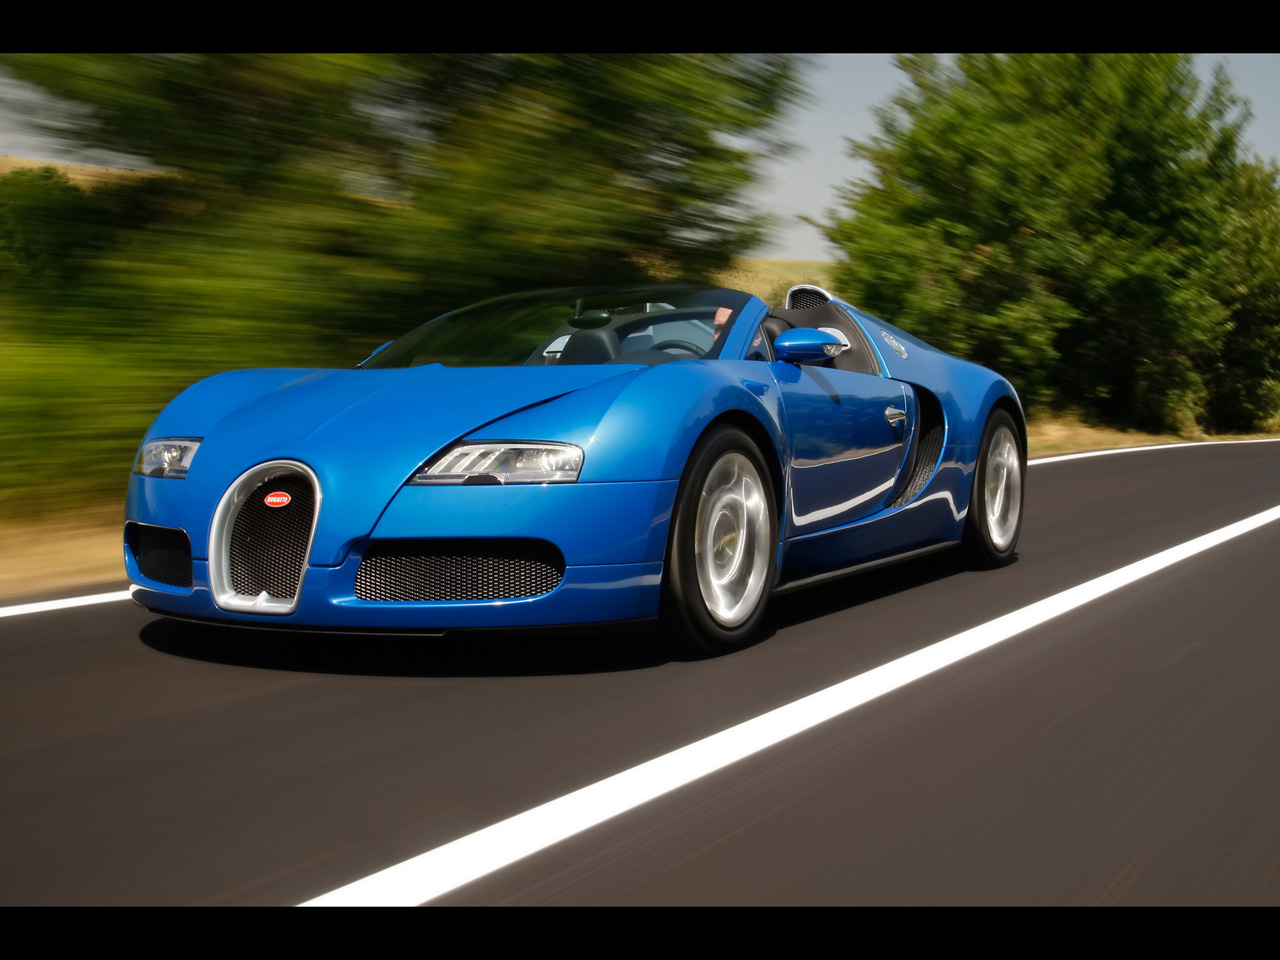 bugatti car wallpapers hd nice wallpapers. Black Bedroom Furniture Sets. Home Design Ideas